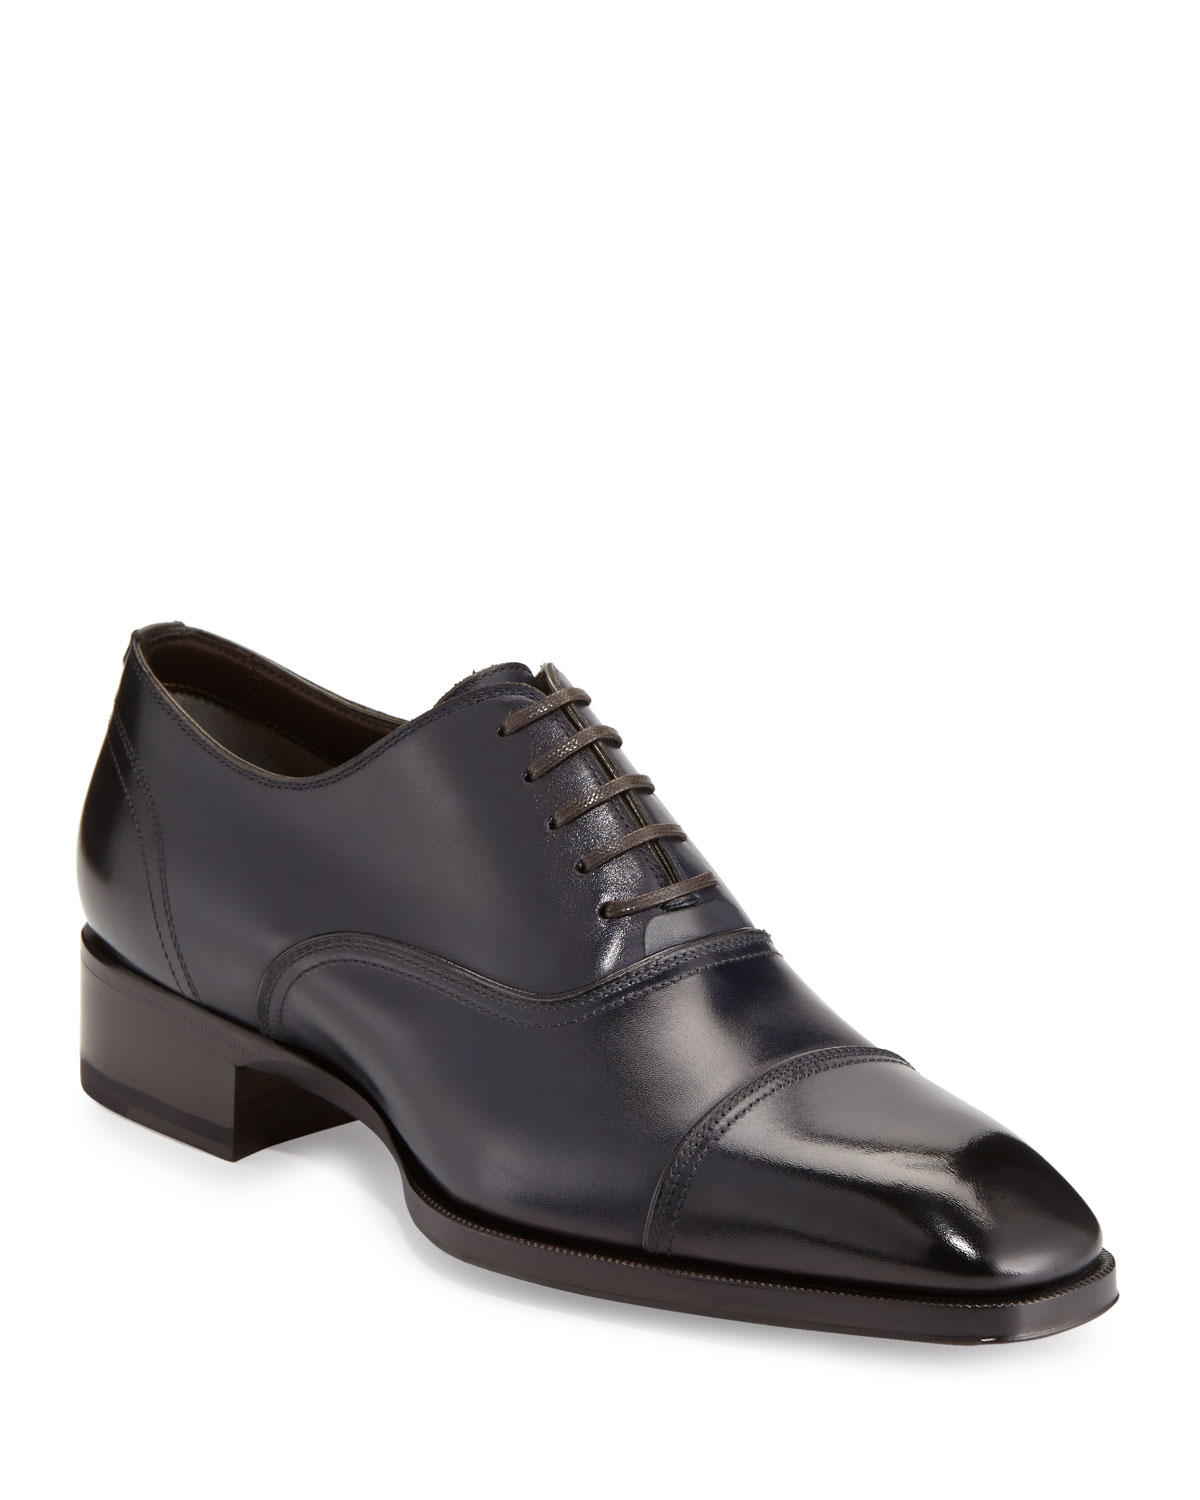 1c5e4bcdcca7 Tom Ford Lace-up Mens Shoes